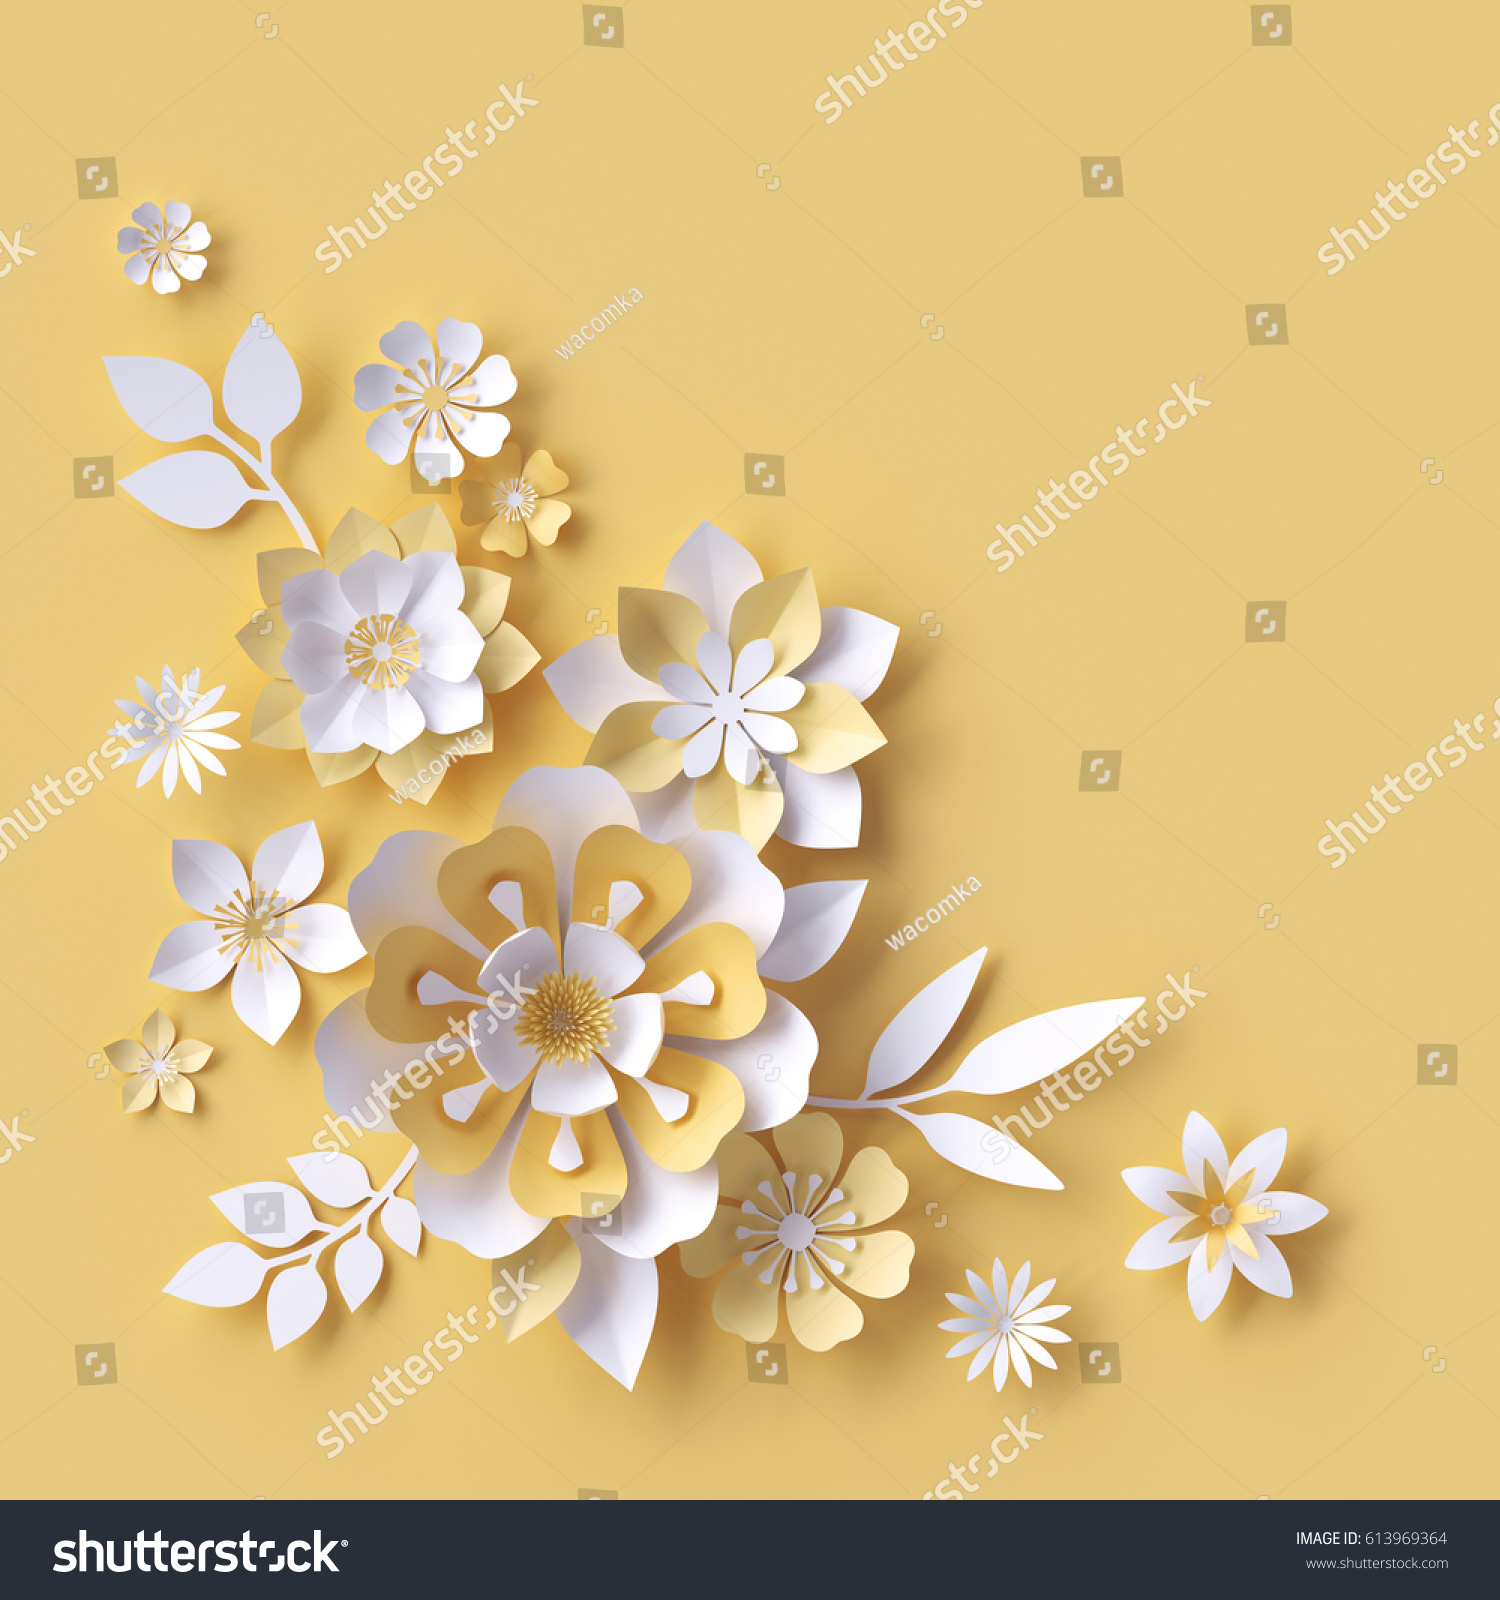 3 D Render Abstract Paper Flowers Decorative Stock Illustration ...